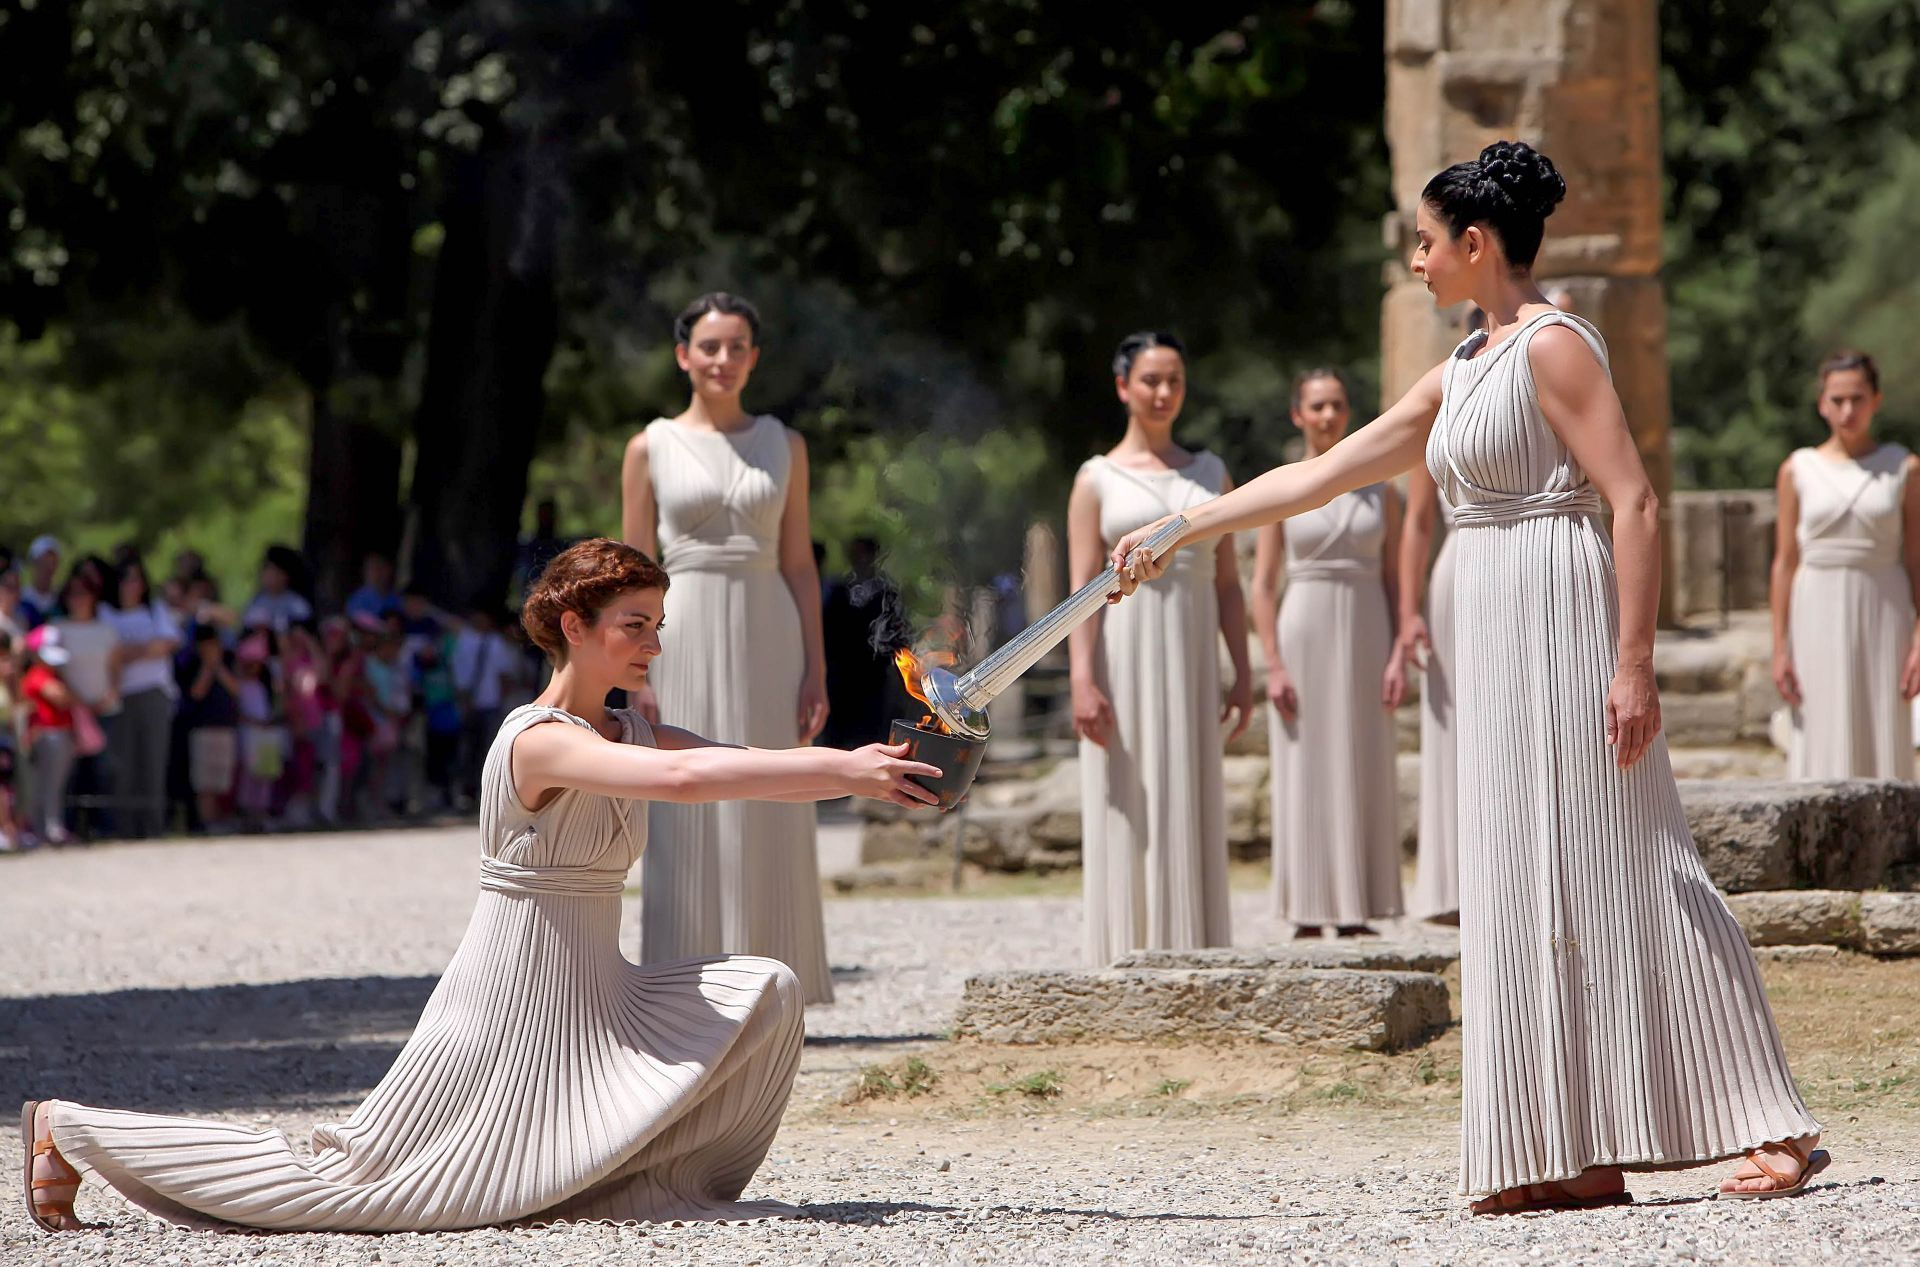 Olympia: Olympic flame